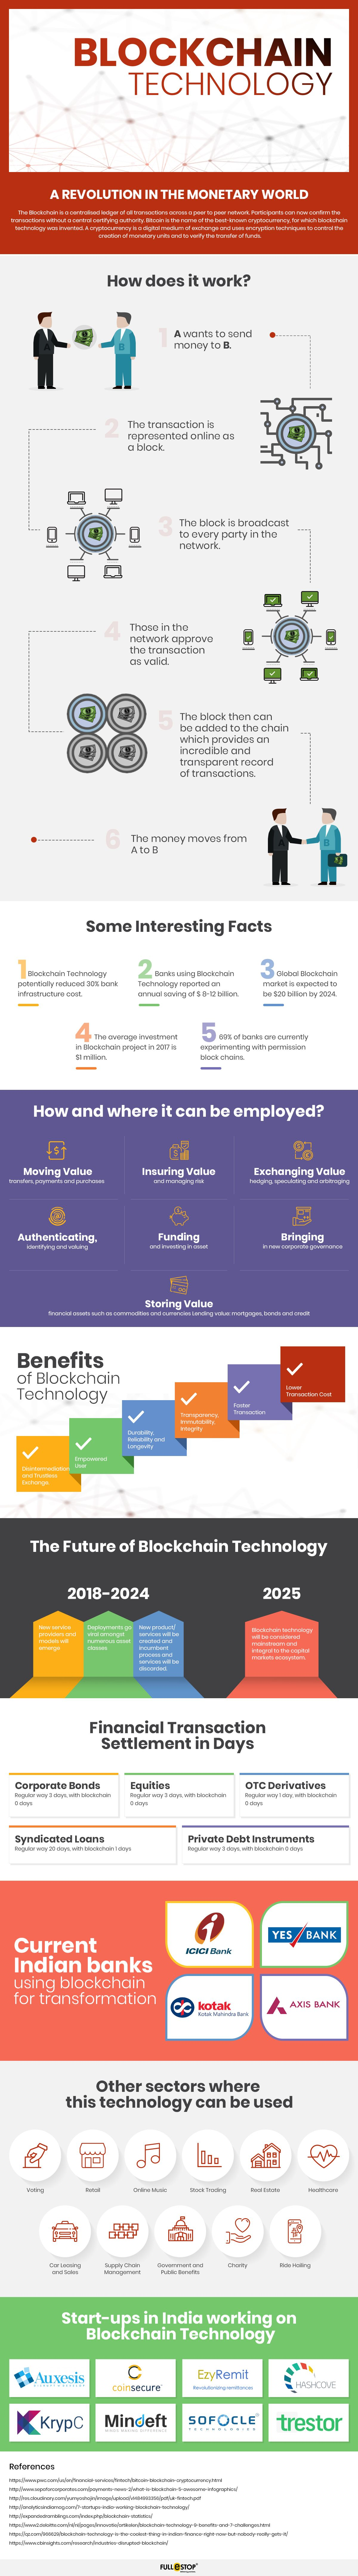 infographic-blockchain-technology